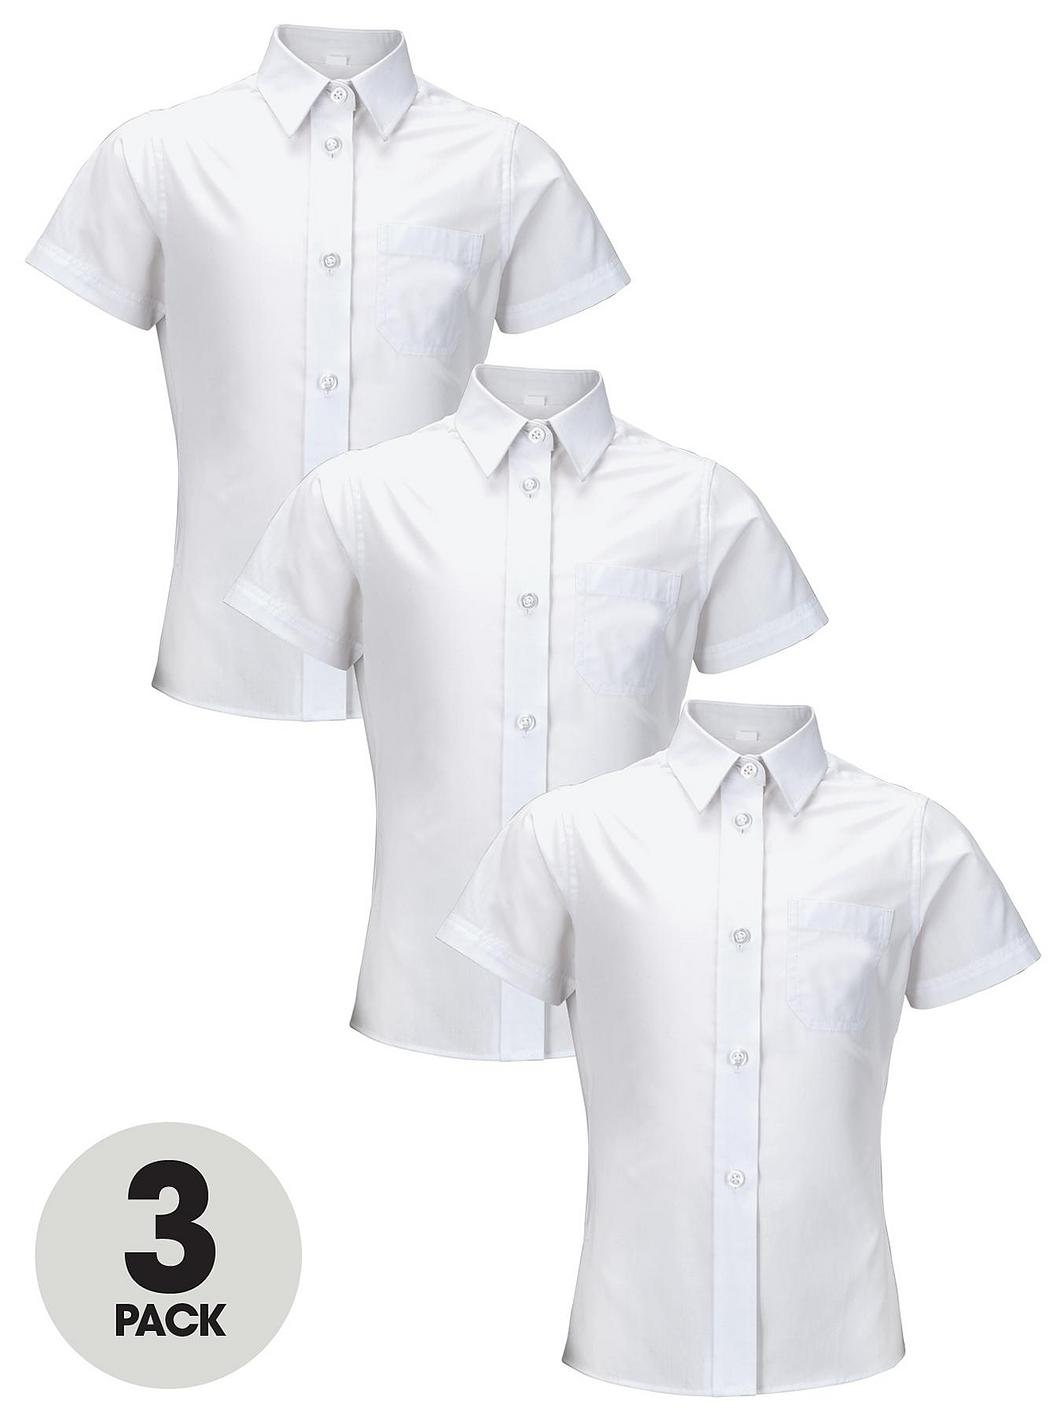 Top Class Girls Short Sleeve School Shirts 3 Pack Very